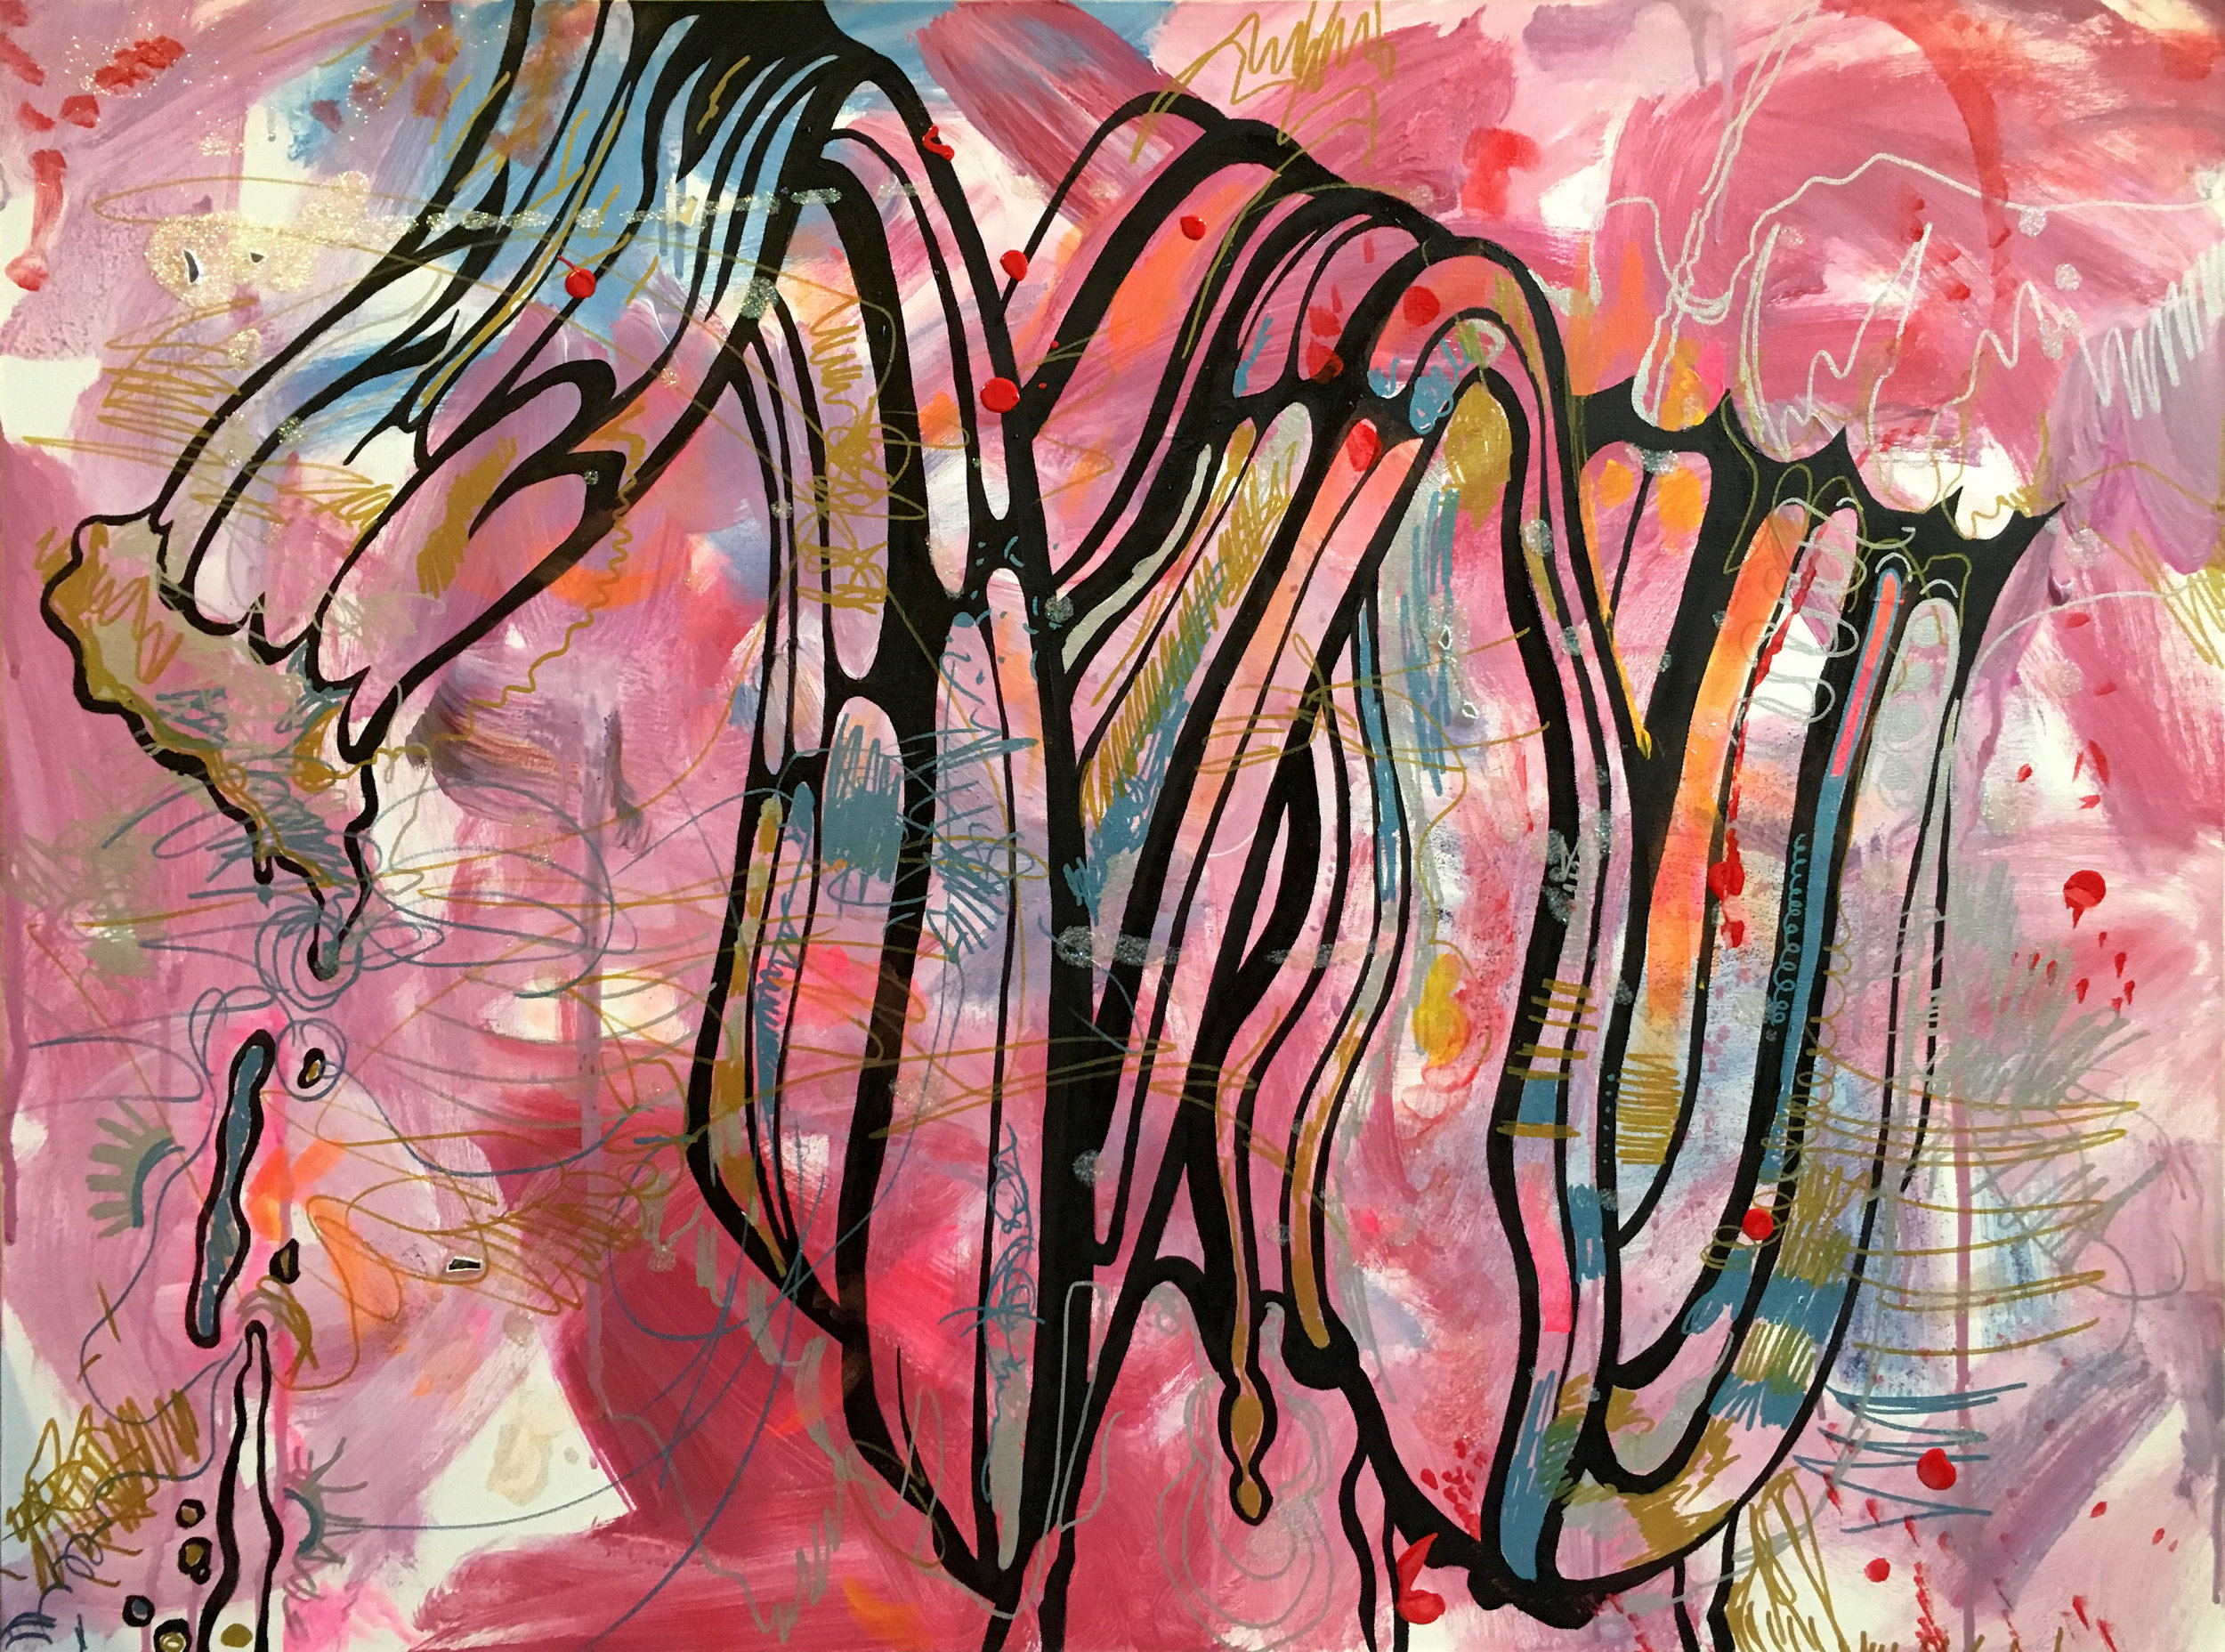 "Acrylic, oil, glitter craft paint, metallic marker, glass.  The Coloring Book:  My Large Glass is shattered on the floor. When I copy the brushstroke free-hand, it gets less and less accurate. I don't break the illusion of duplication as intent. I let it morph, but only just so. The process is ""painstaking,"" just like he wanted. It's deadpan Lichtenstein but also splattered with glitter. A re-personalization of a depersonalized work, continuing the cycle of reclamation (of things which reigned, were dismantled, and called upon again, always at somebody's expense).  I color it flat on the floor. It's calming like a coloring book, an exhale, inspiring that Pollock interpretation of Surrealist inhibition-breaking. In the hyper-pressurized zone where the deliberate seeks to cede to the automatic (where we aim to uncover the unconscious and speak the universal), the impulses of AbEx are shown in the process of wavering. The Institution, over a century after the Modern arose, continues to survive. Even Pop was subsumed.  There's broken glass everywhere. In the doorway. On the rug. On the canvas like an nonsensical mosaic. Paint can be as graphic as it is material. What's ""genius (him, my ability to copy him)"" is layered with the banal, what's art is pierced with the everyday. Despite him, the brushstroke lives on exalted, fetishized, instrumentalized."